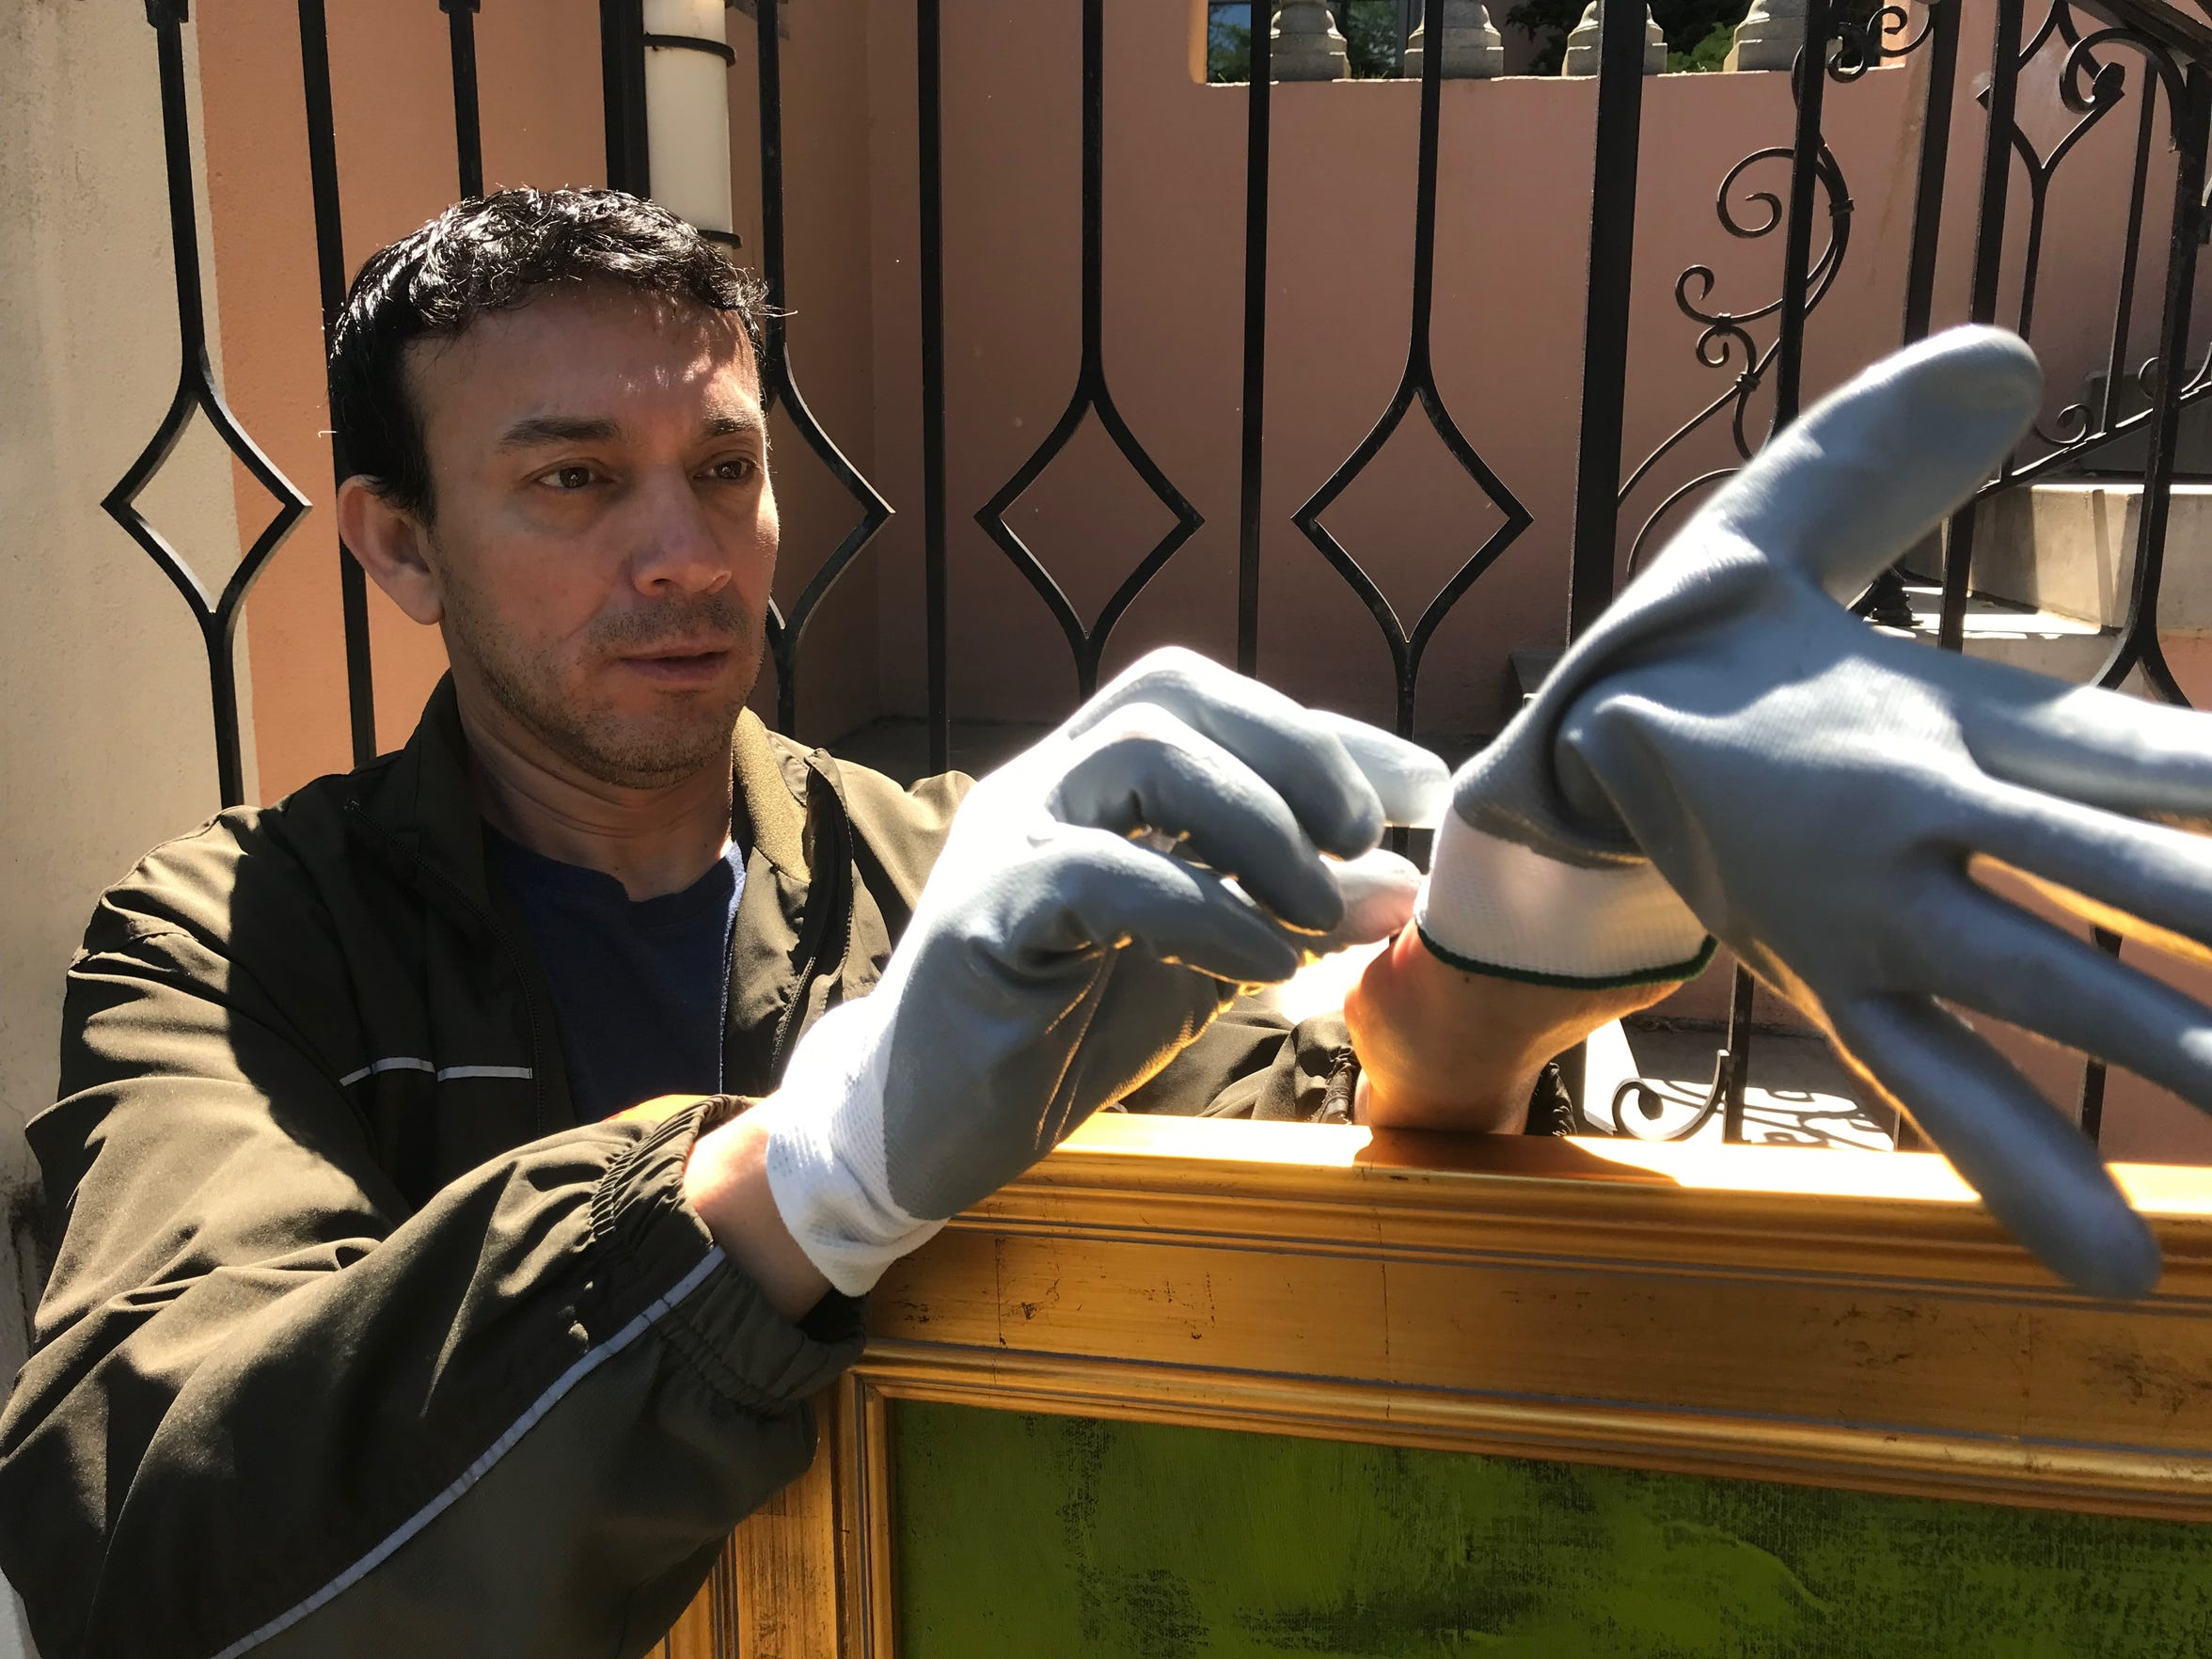 San Angelo artist René Alvarado puts on special gloves before picking up art to be installed in the European Union May 15, 2019.